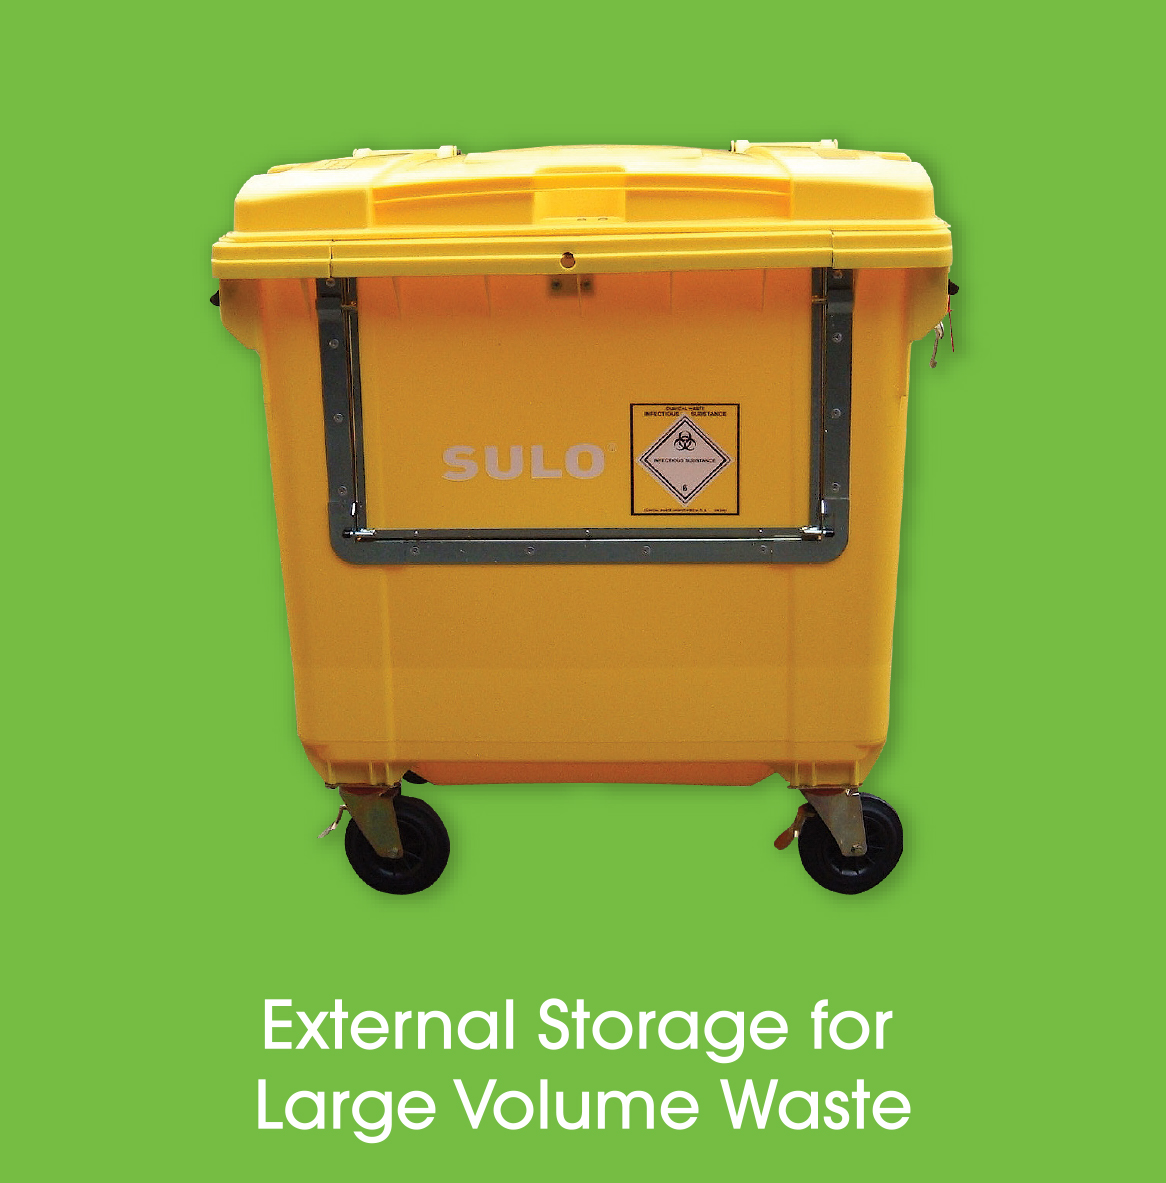 Offensive Waste Trolley - Offensive Waste Disposal